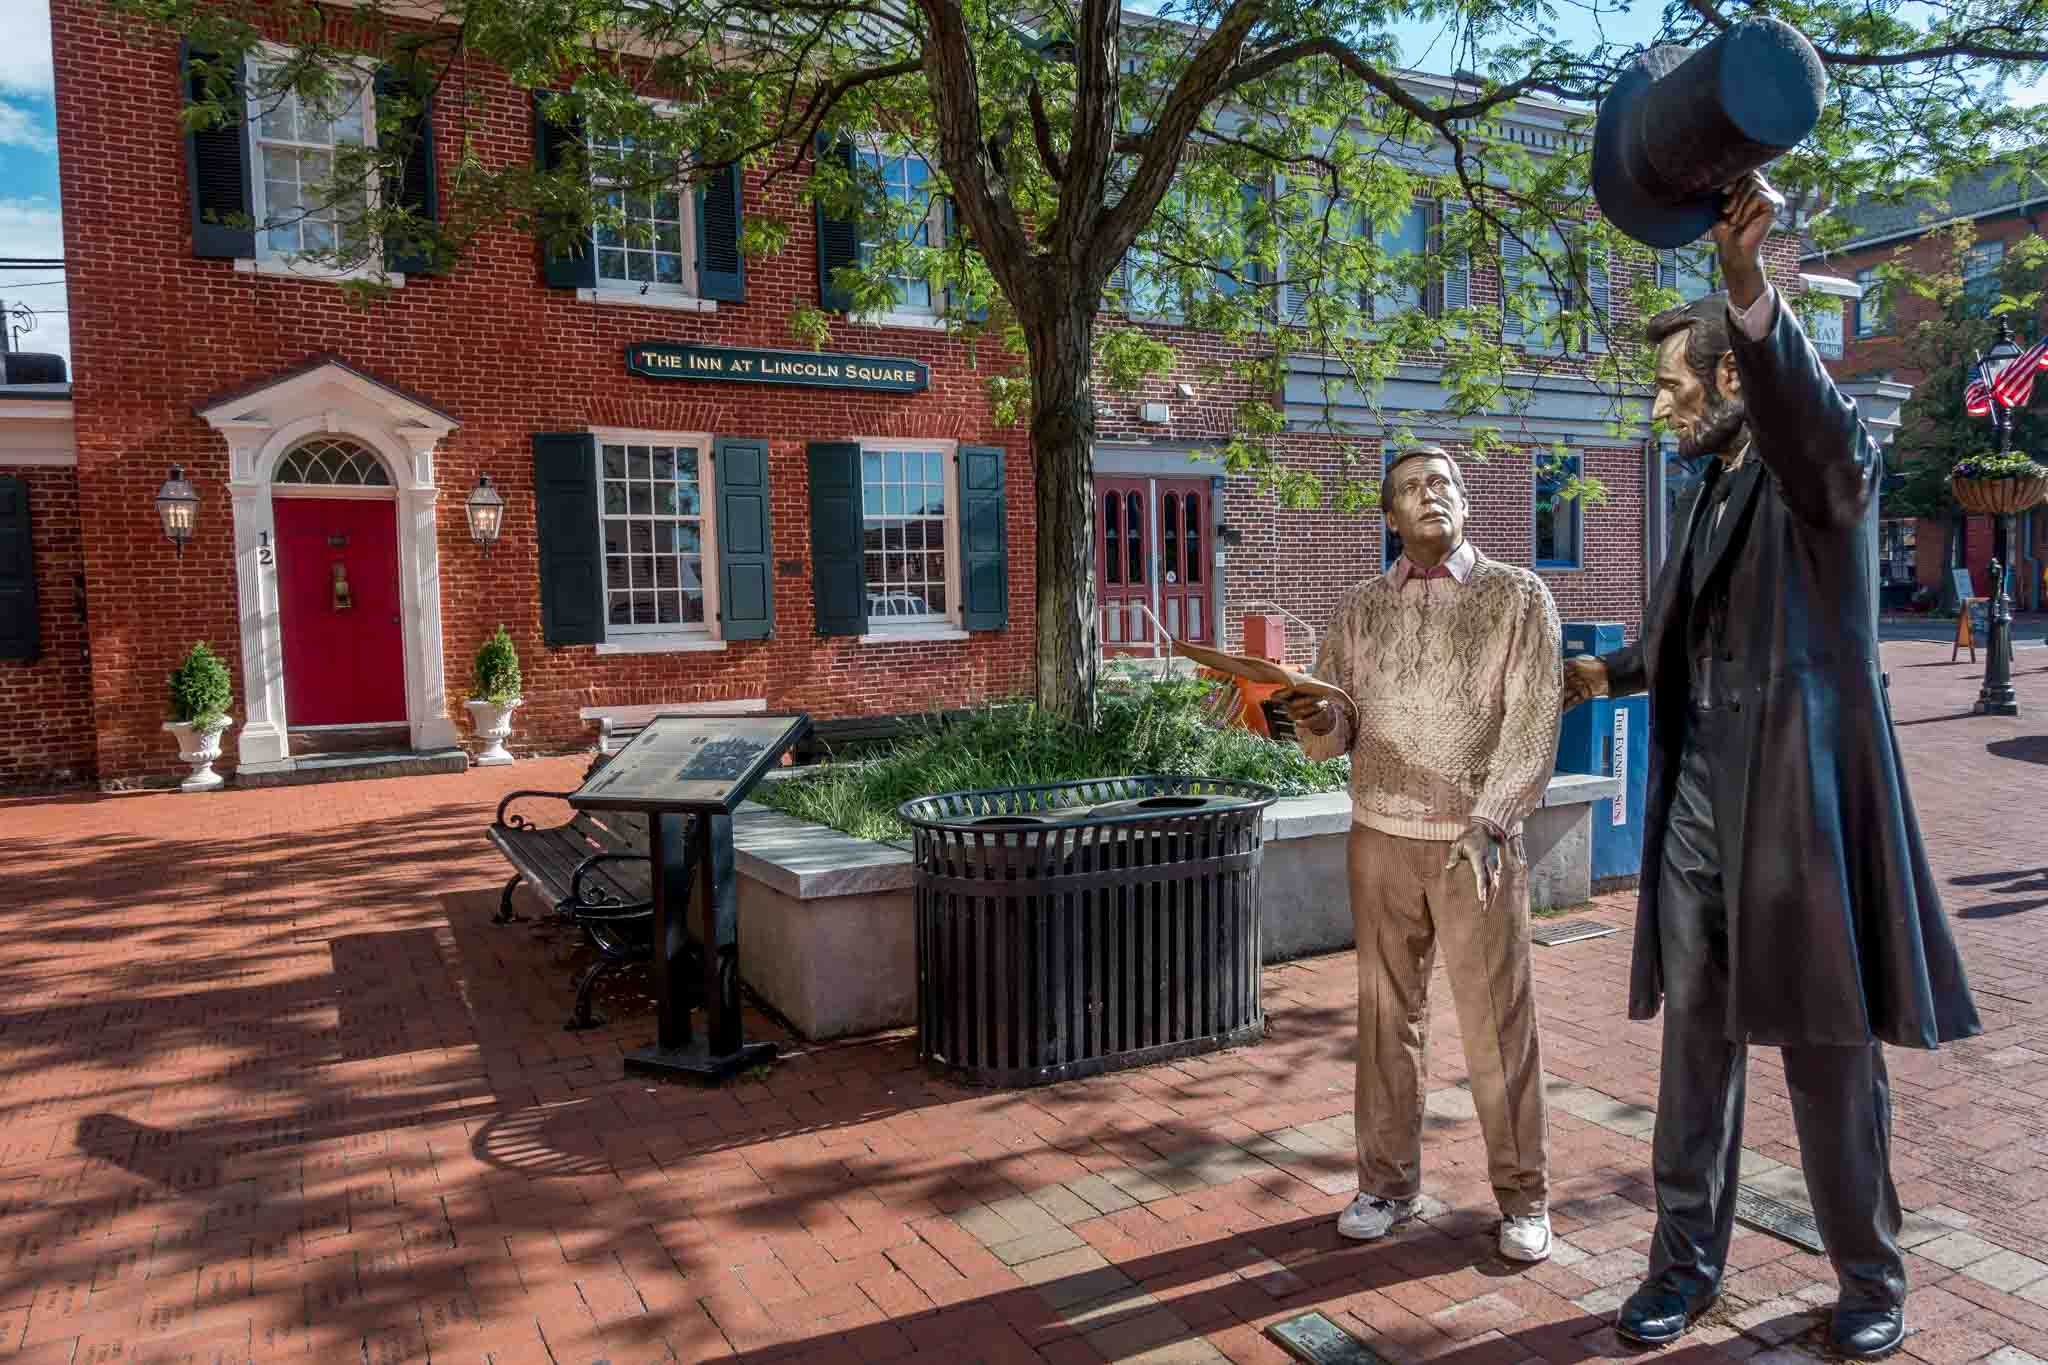 Statue of President Lincoln and a tourist